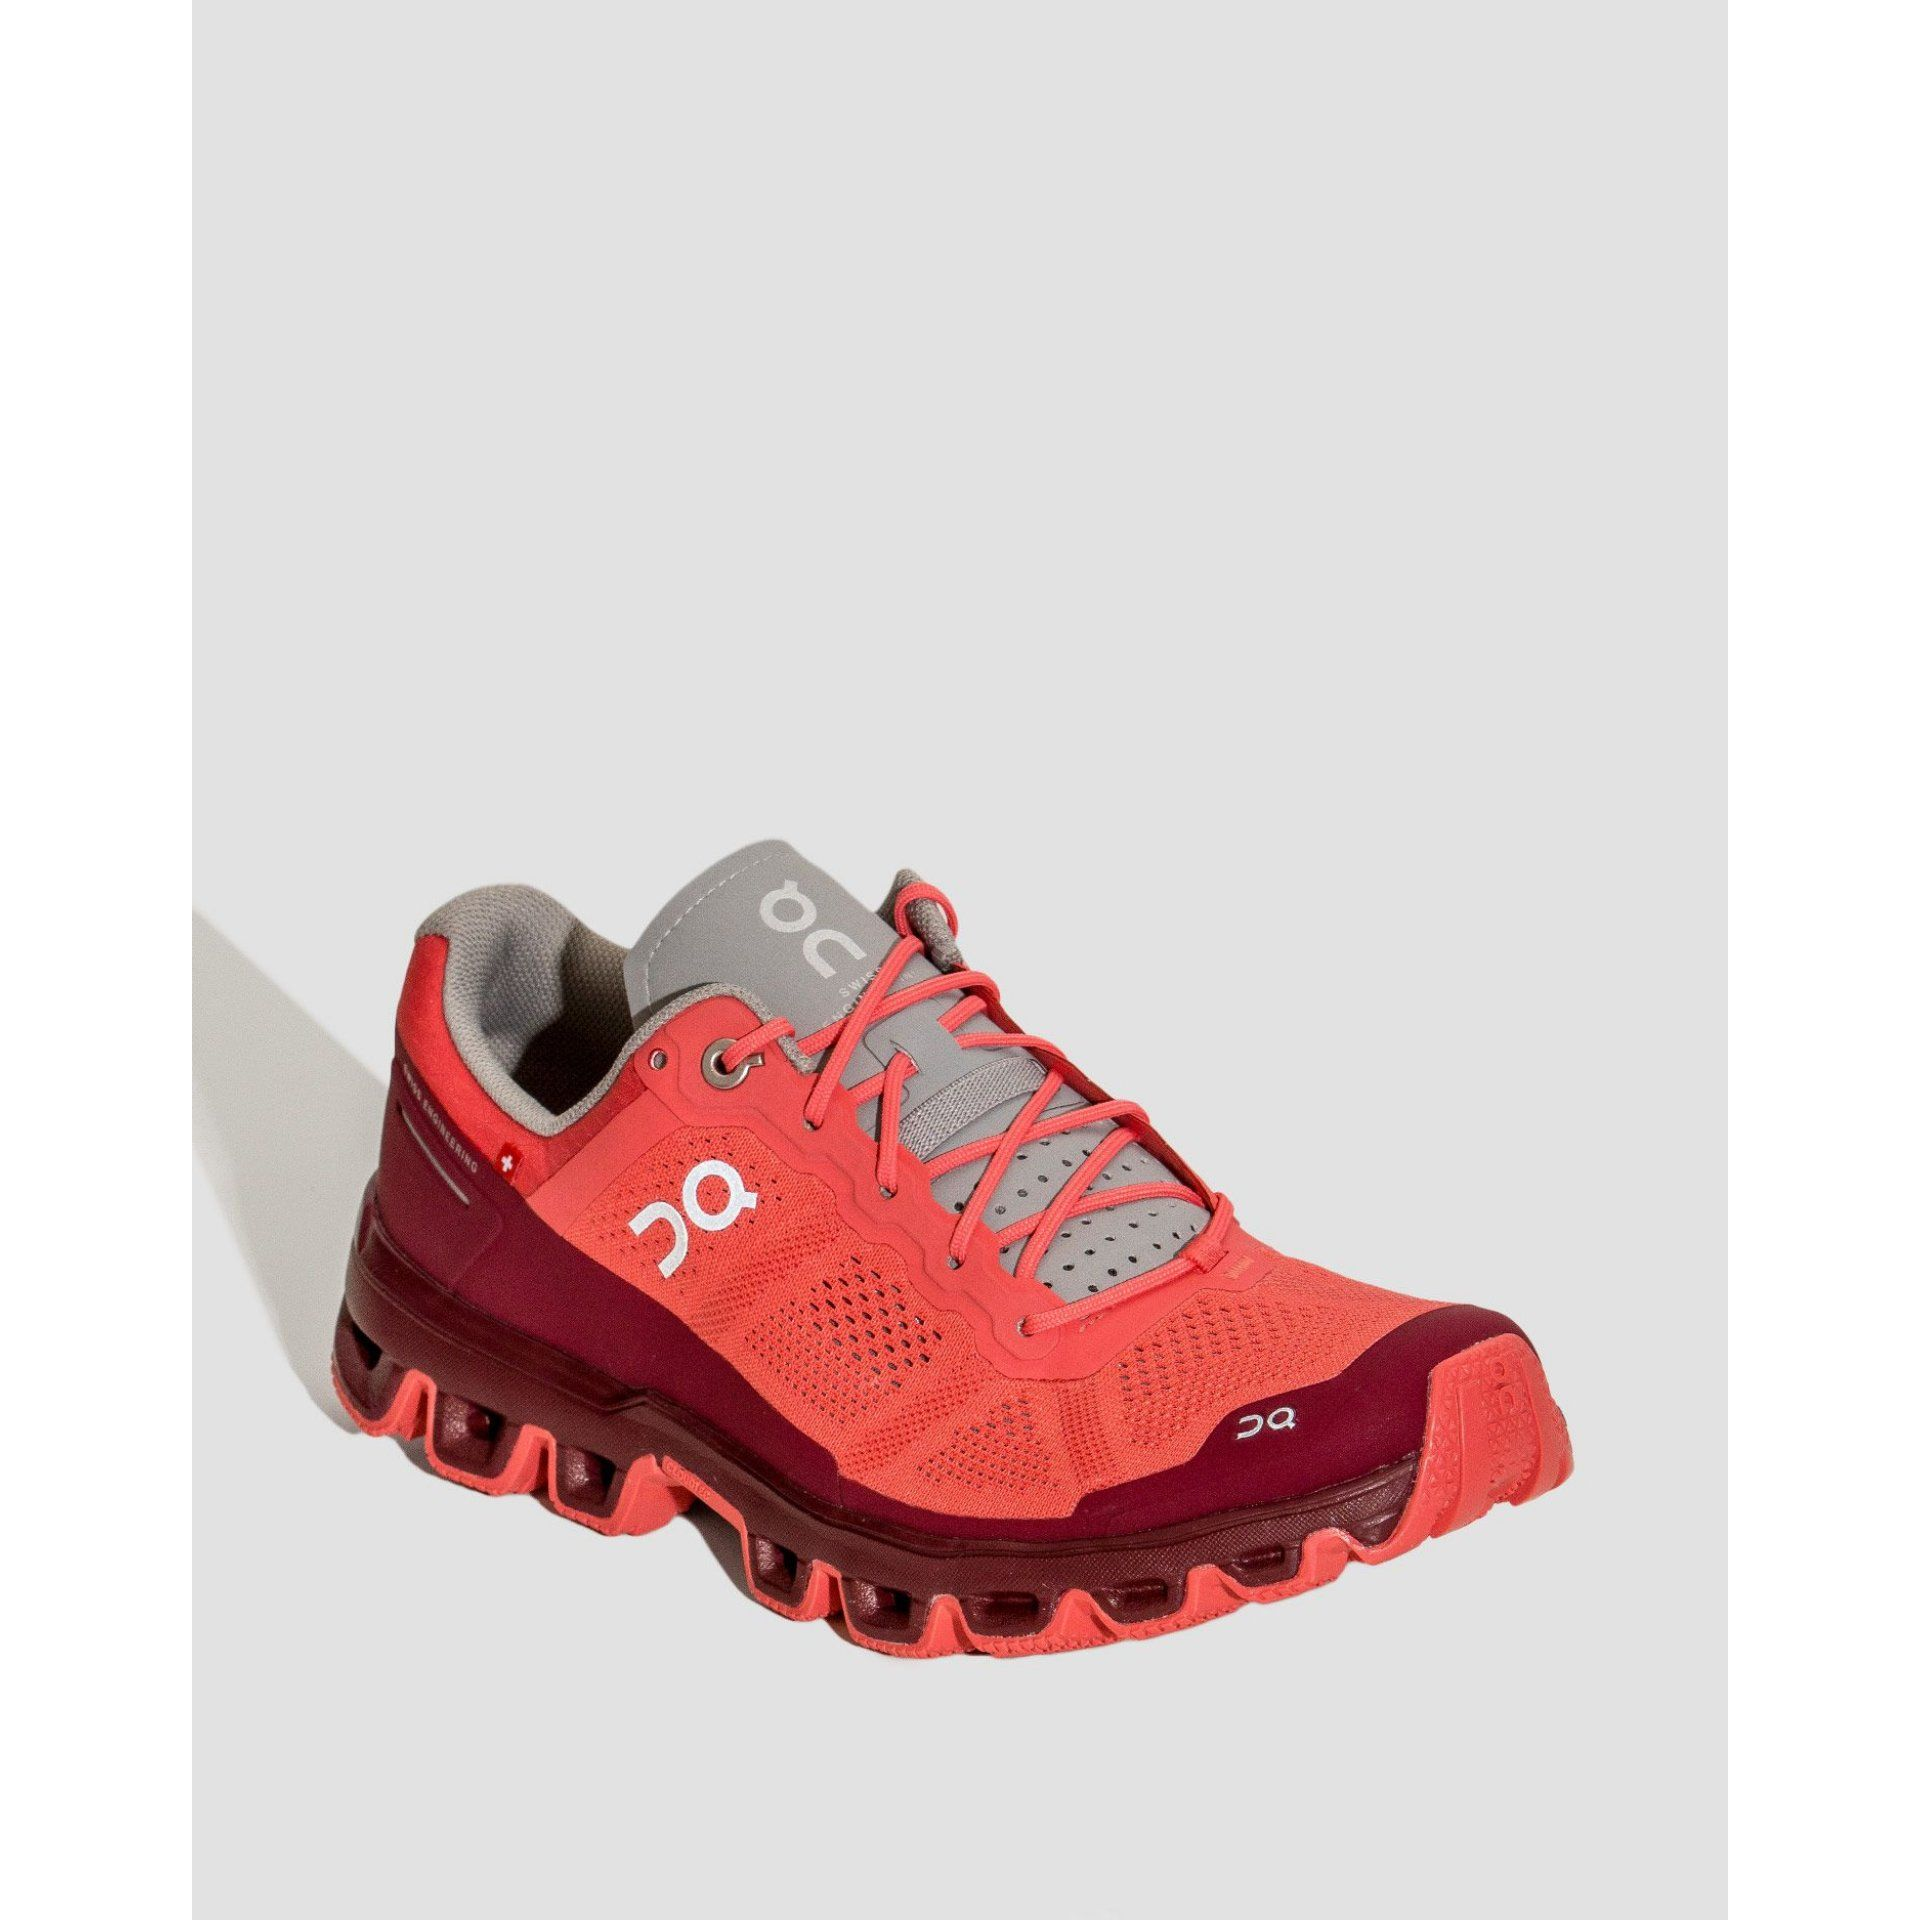 BUTY DO BIEGANIA ON RUNNING CLOUDVENTURE W CORAL|MULBERRY 2